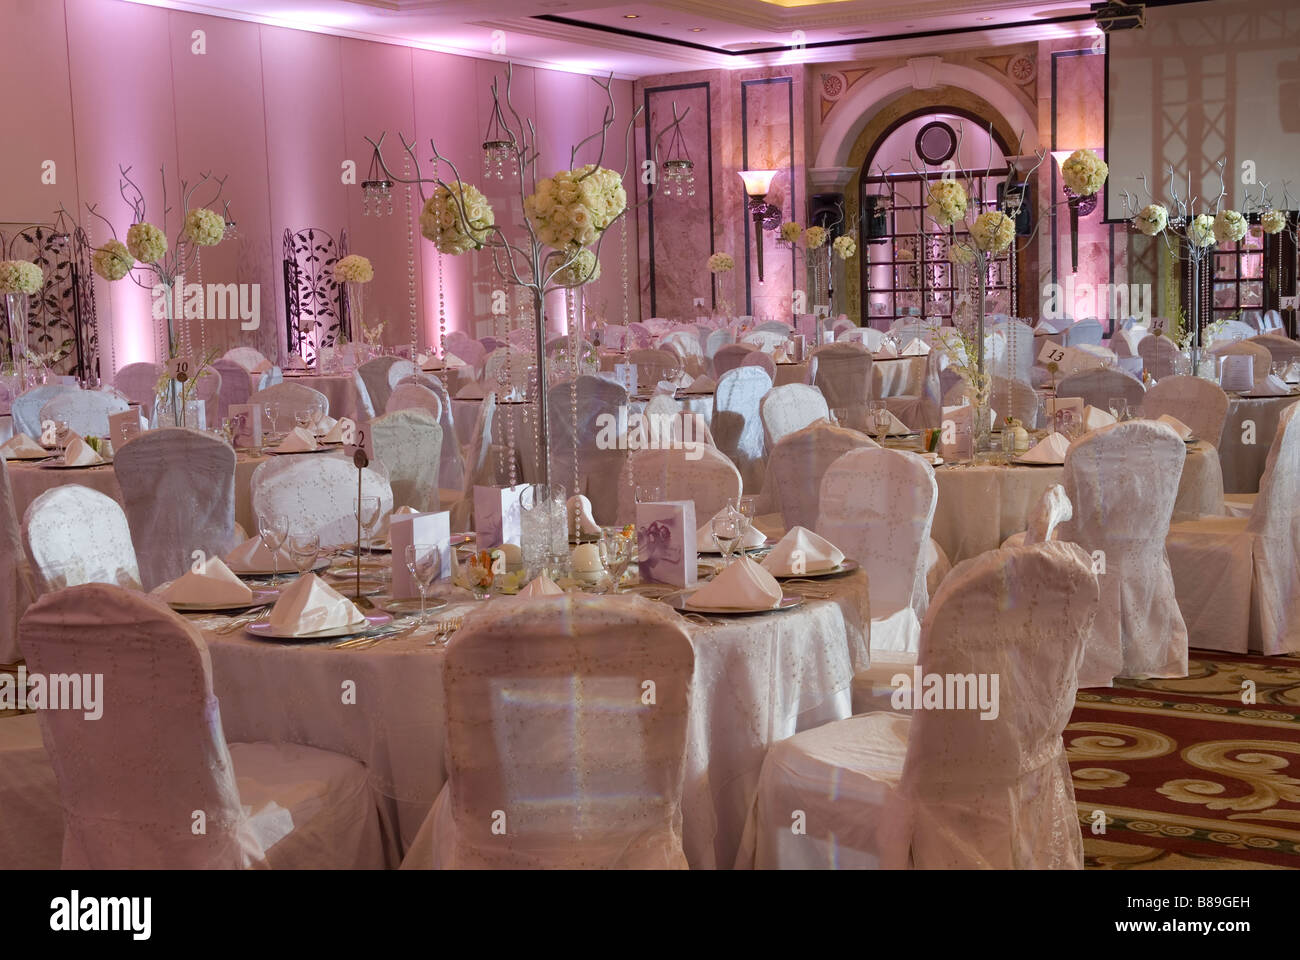 Wedding hall in phoenicia hotel lebanon middle east stock photo wedding hall in phoenicia hotel lebanon middle east junglespirit Gallery